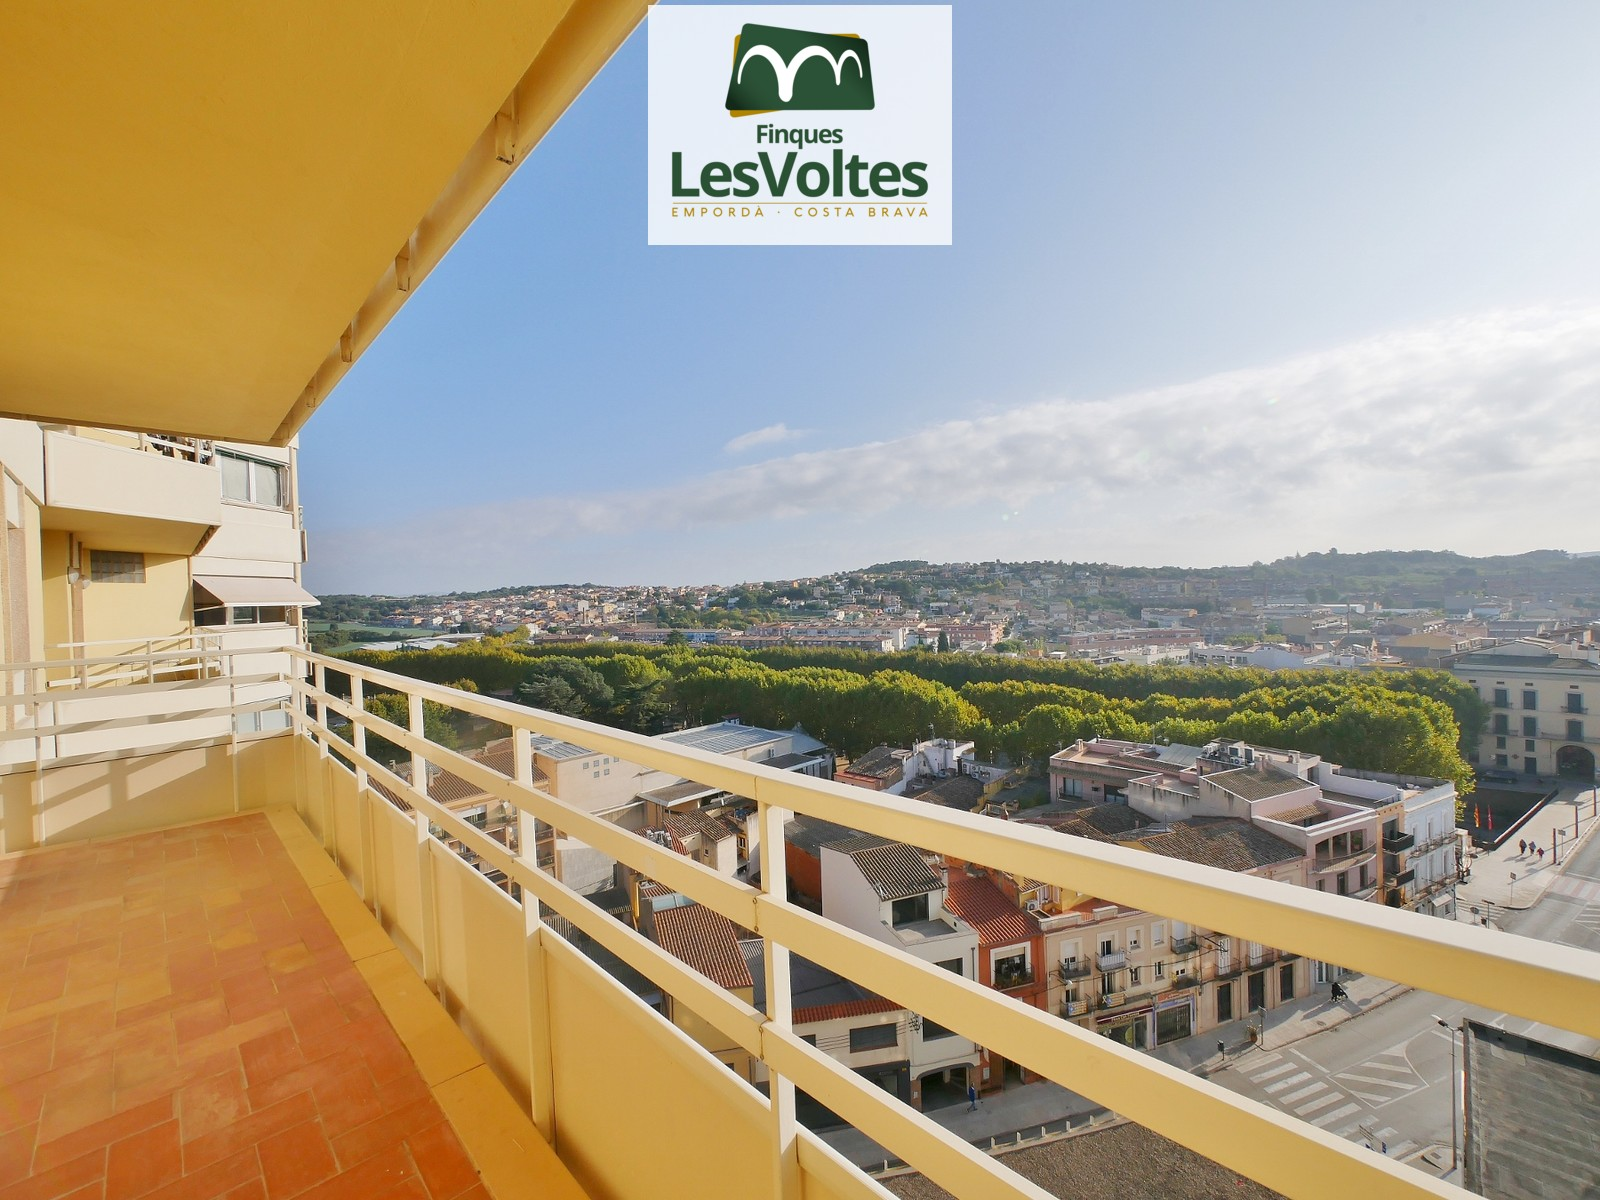 CENTRAL APARTMENT OF 105 M2 ON THE NINTH FLOOR WITH ELEVATOR AND BALCONY FOR SALE IN LA BISBAL D'EMPORDÀ.